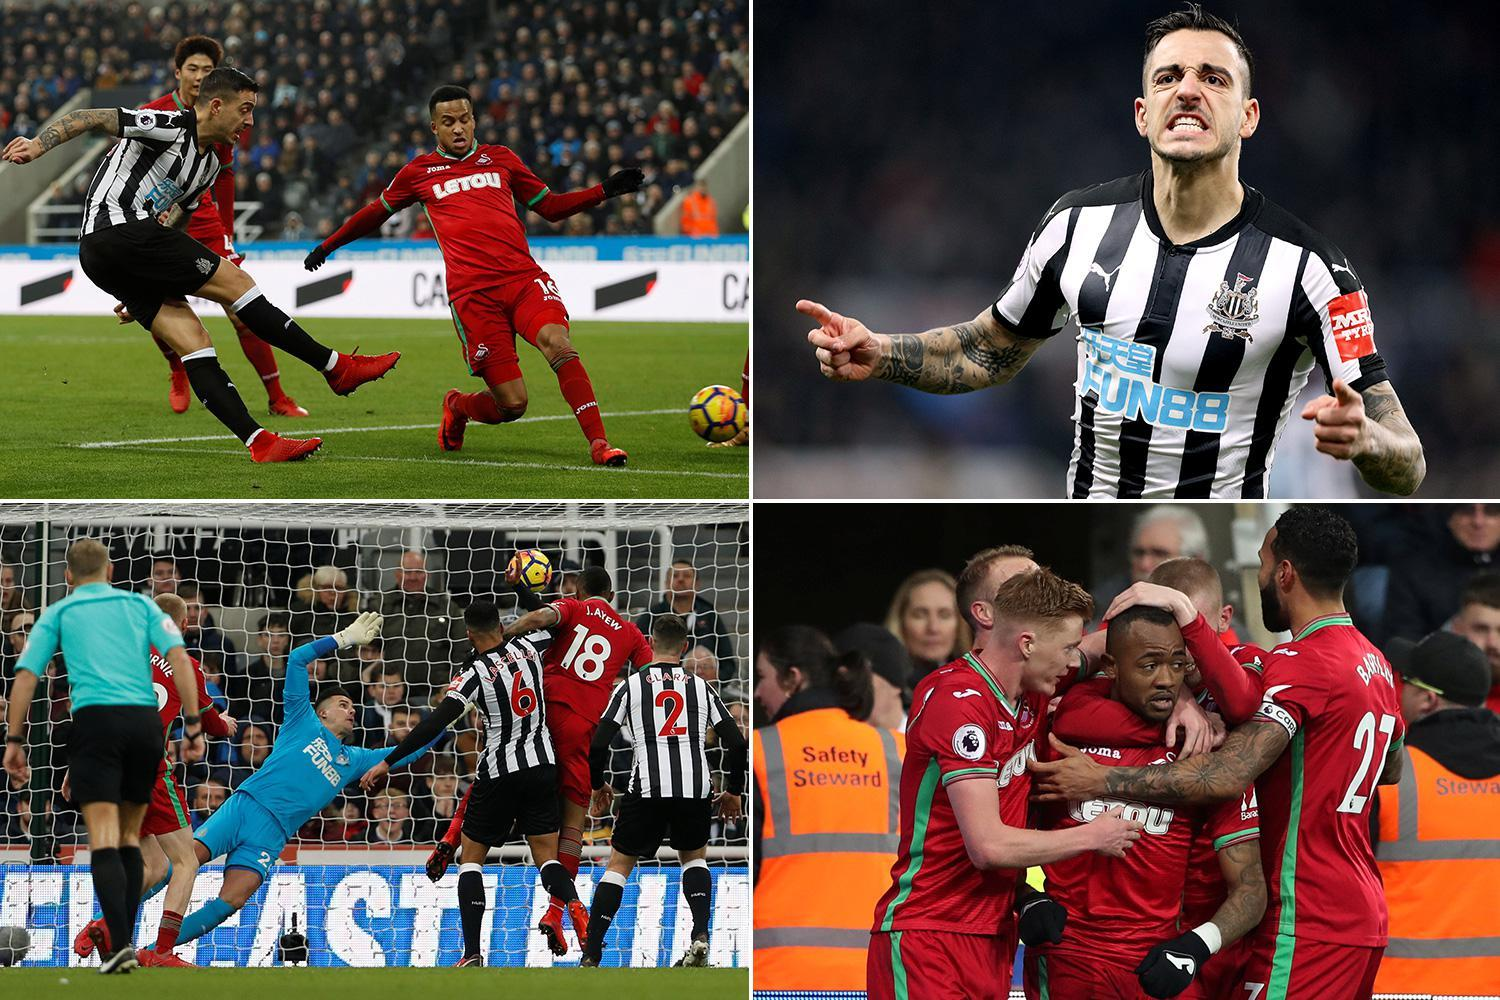 Newcastle 1 Swansea 1: Substitute Joselu equalises with first touch of the game to pile the pressure on struggling Swans